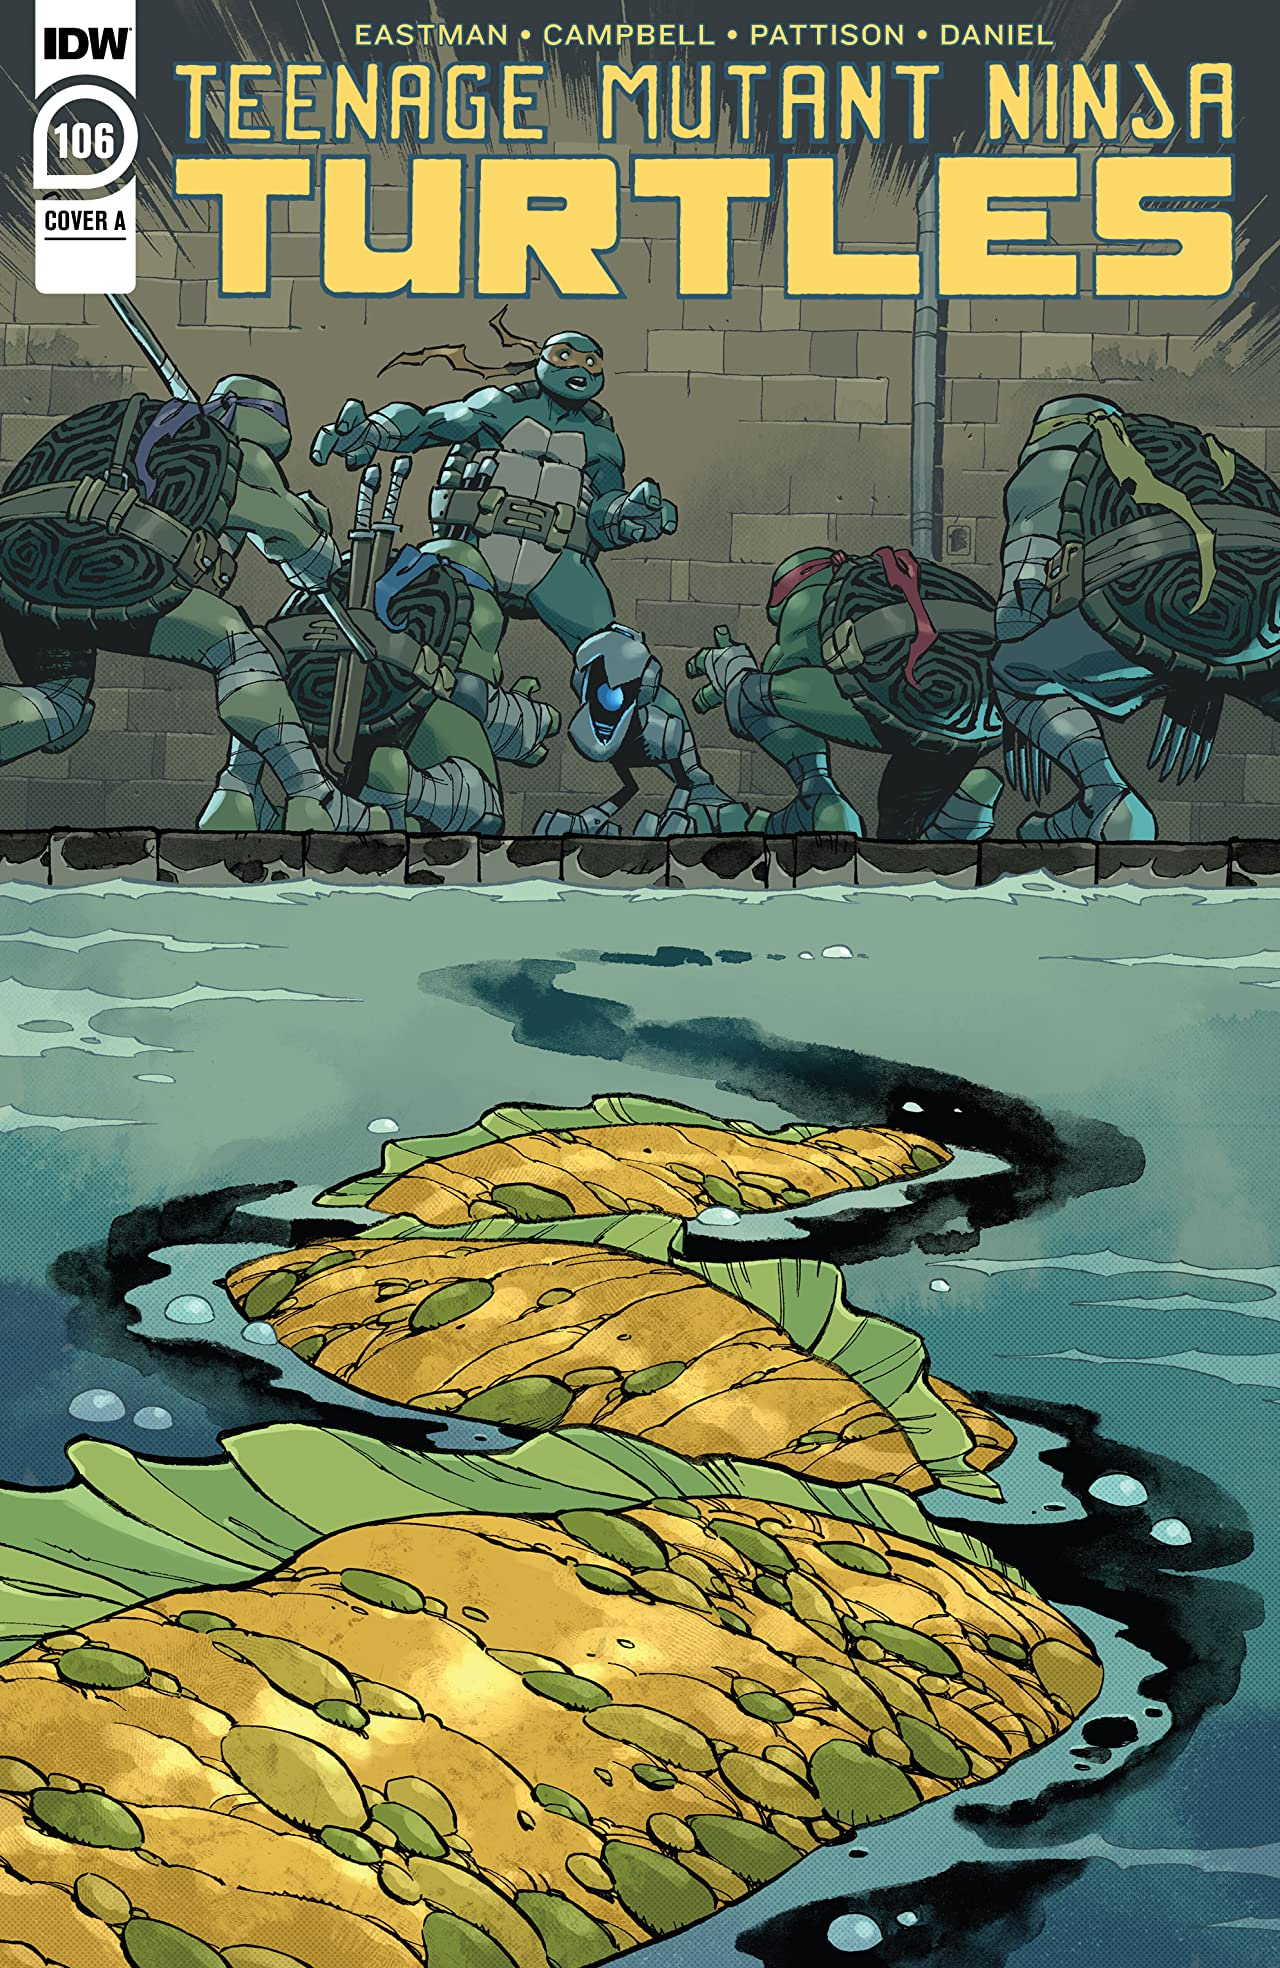 Teenage Mutant Ninja Turtles No.106